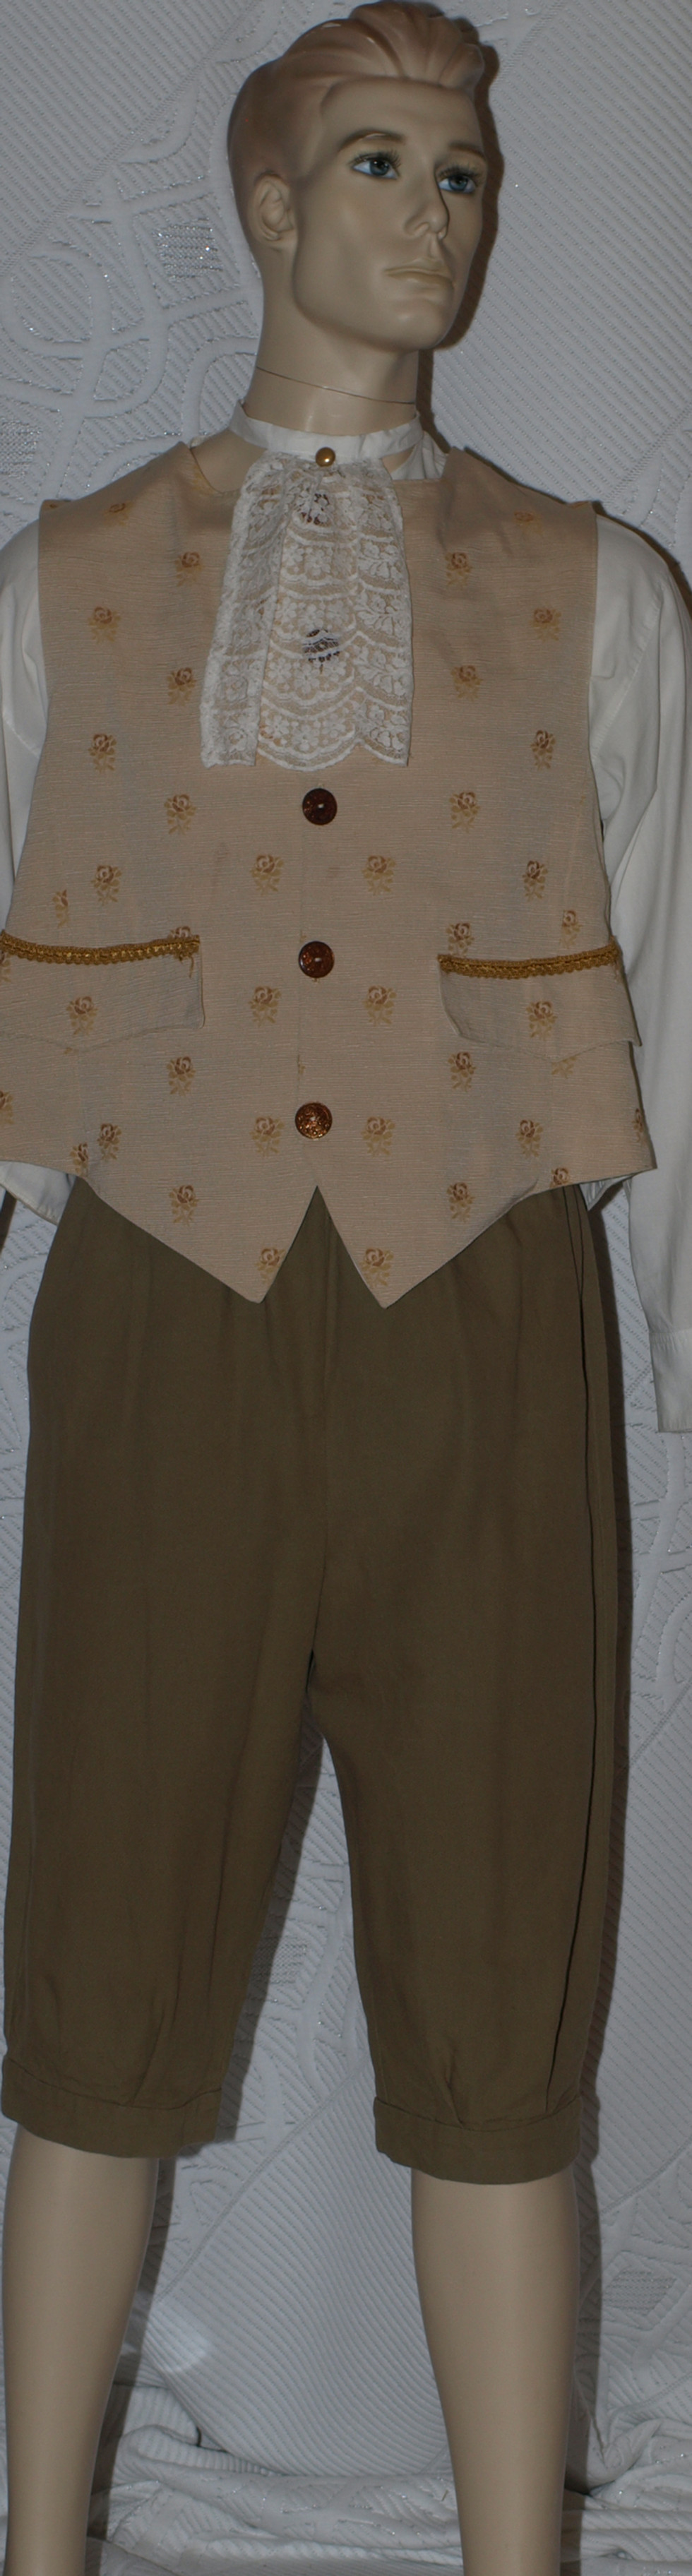 Costume Noble - Taille 40